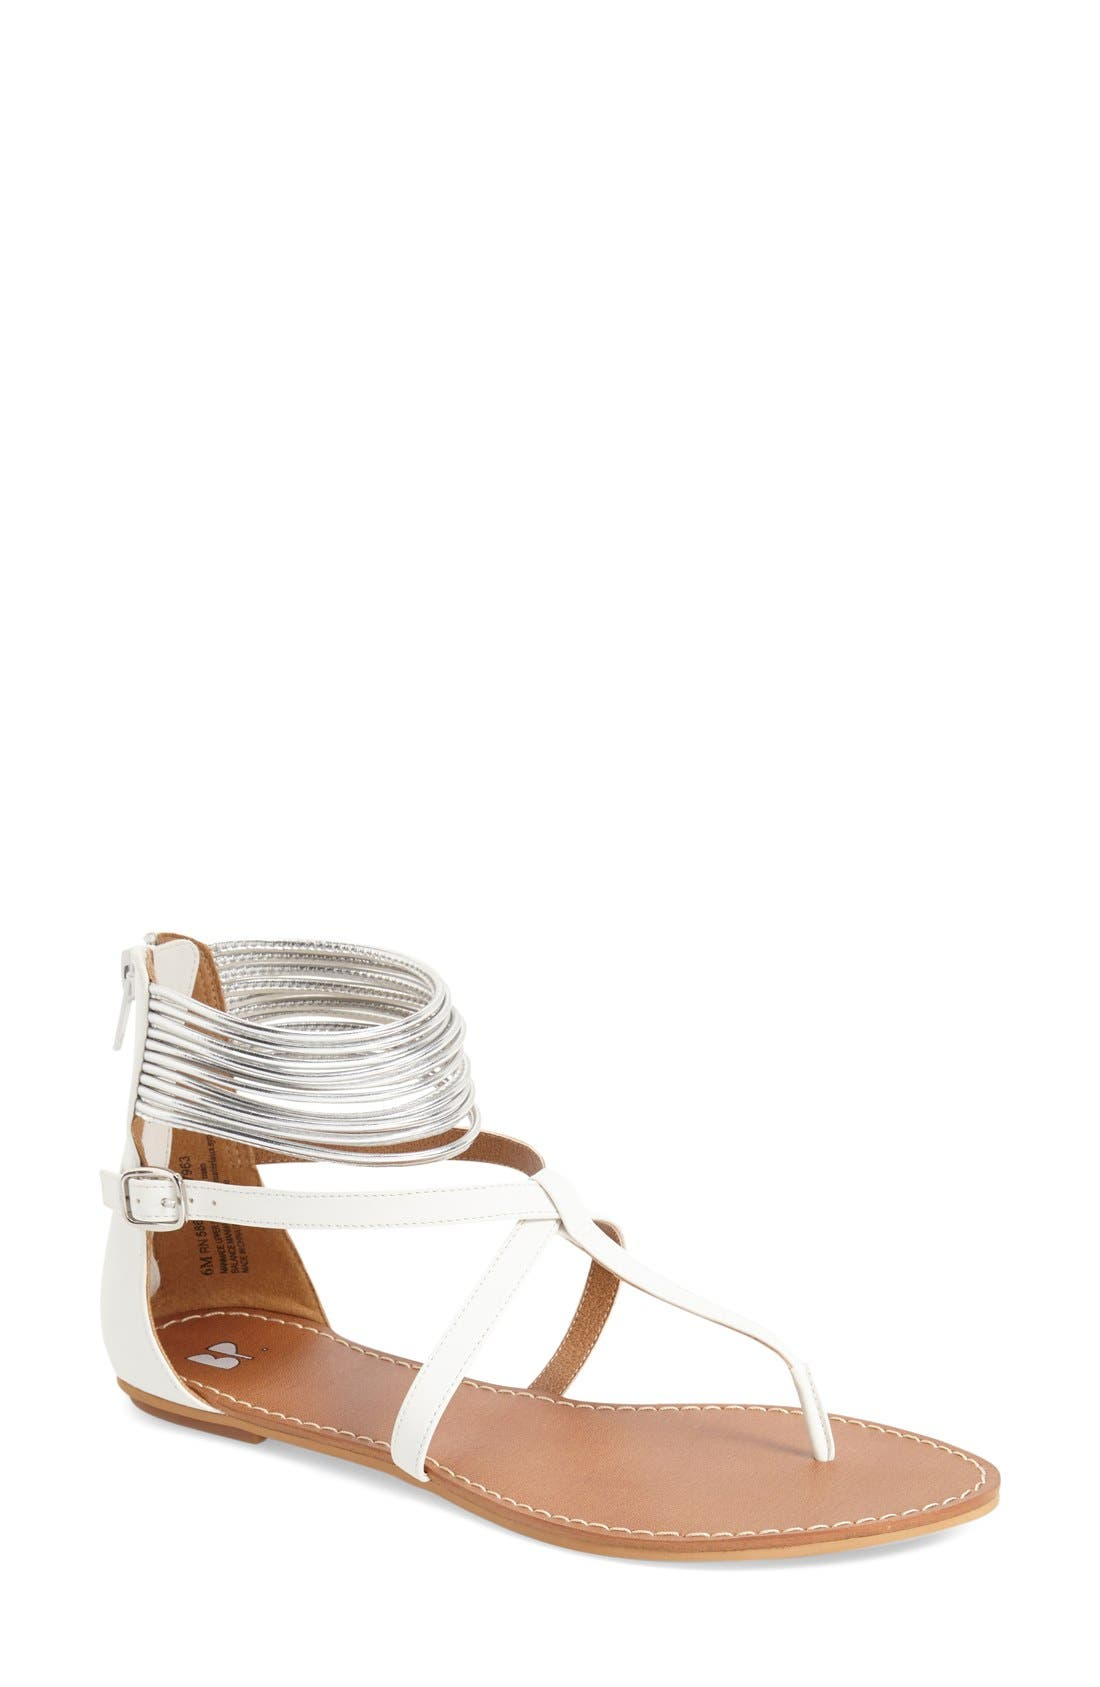 Alternate Image 1 Selected - BP. 'Santiago' Flat Sandal (Women)